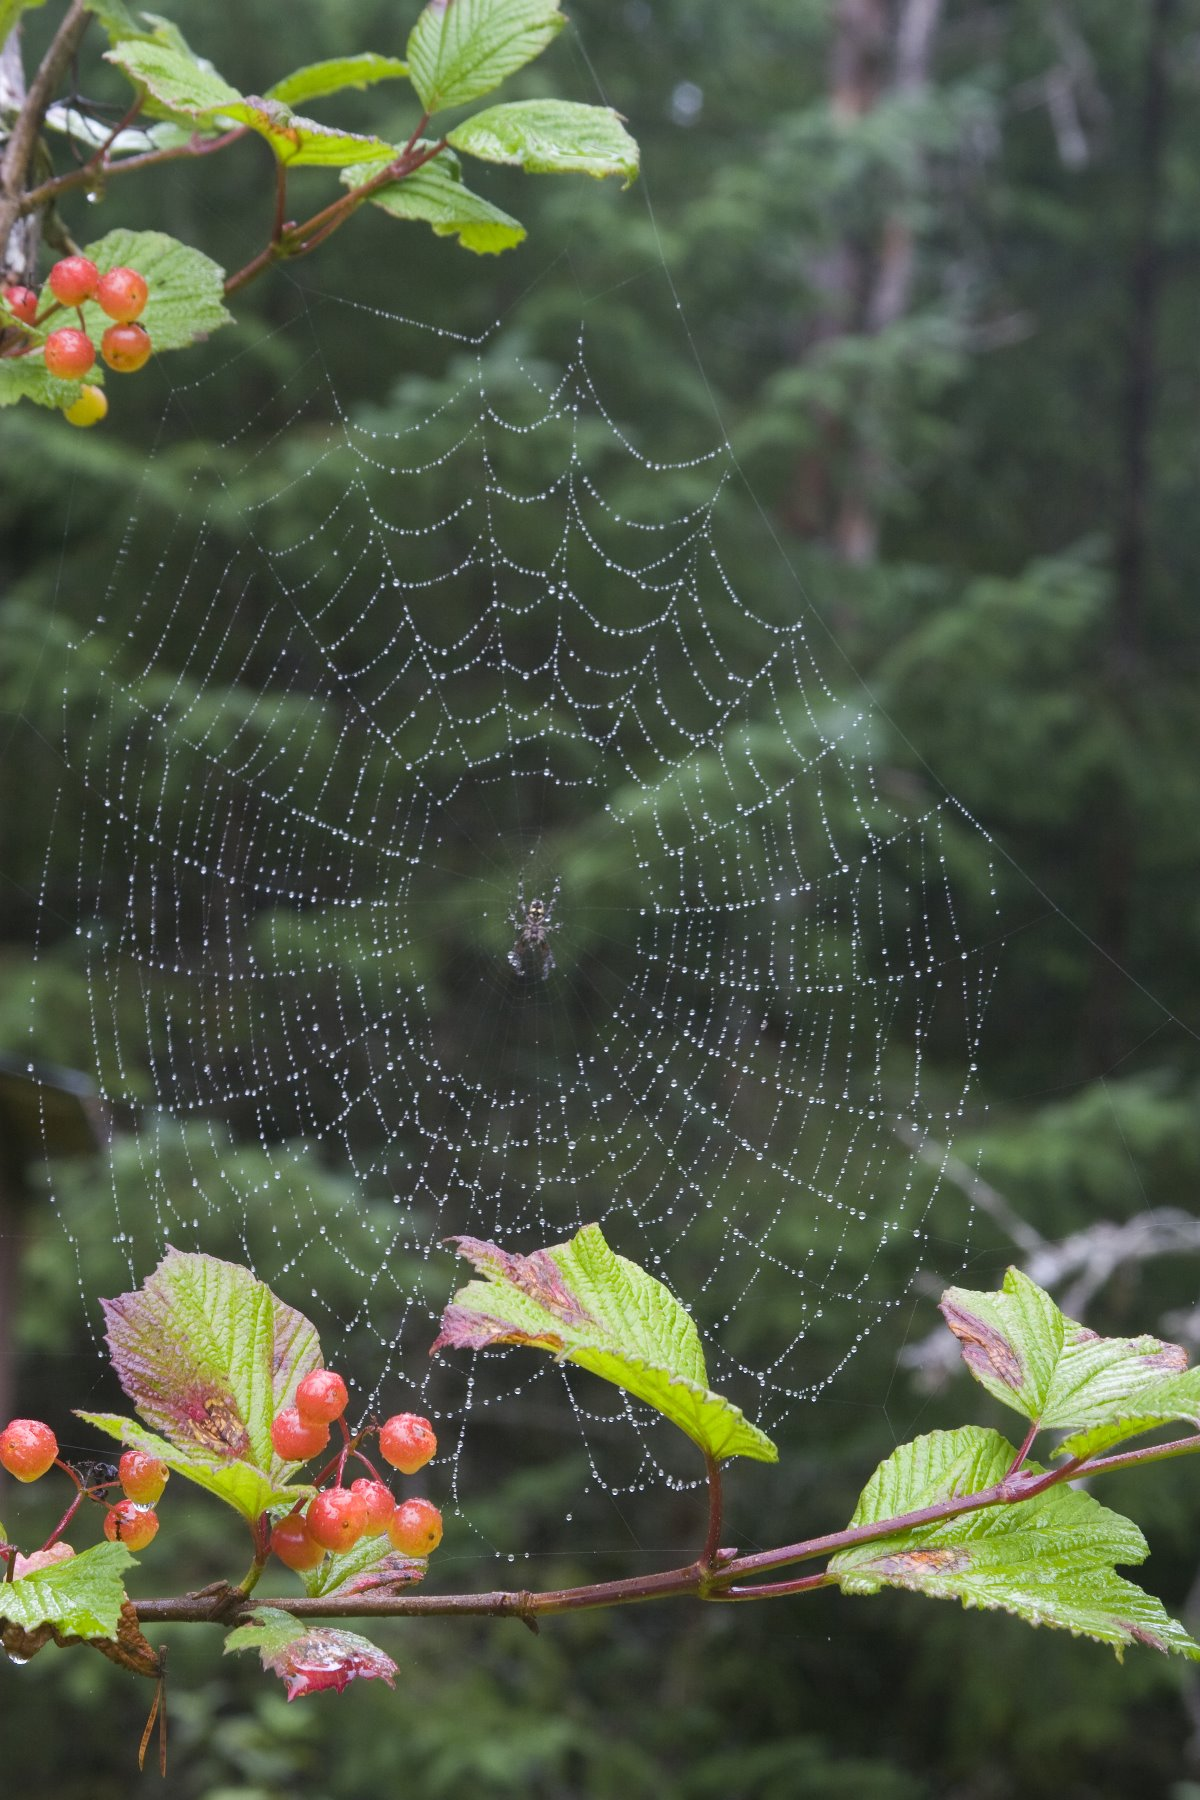 Spider web on a highbush cranberry plant.